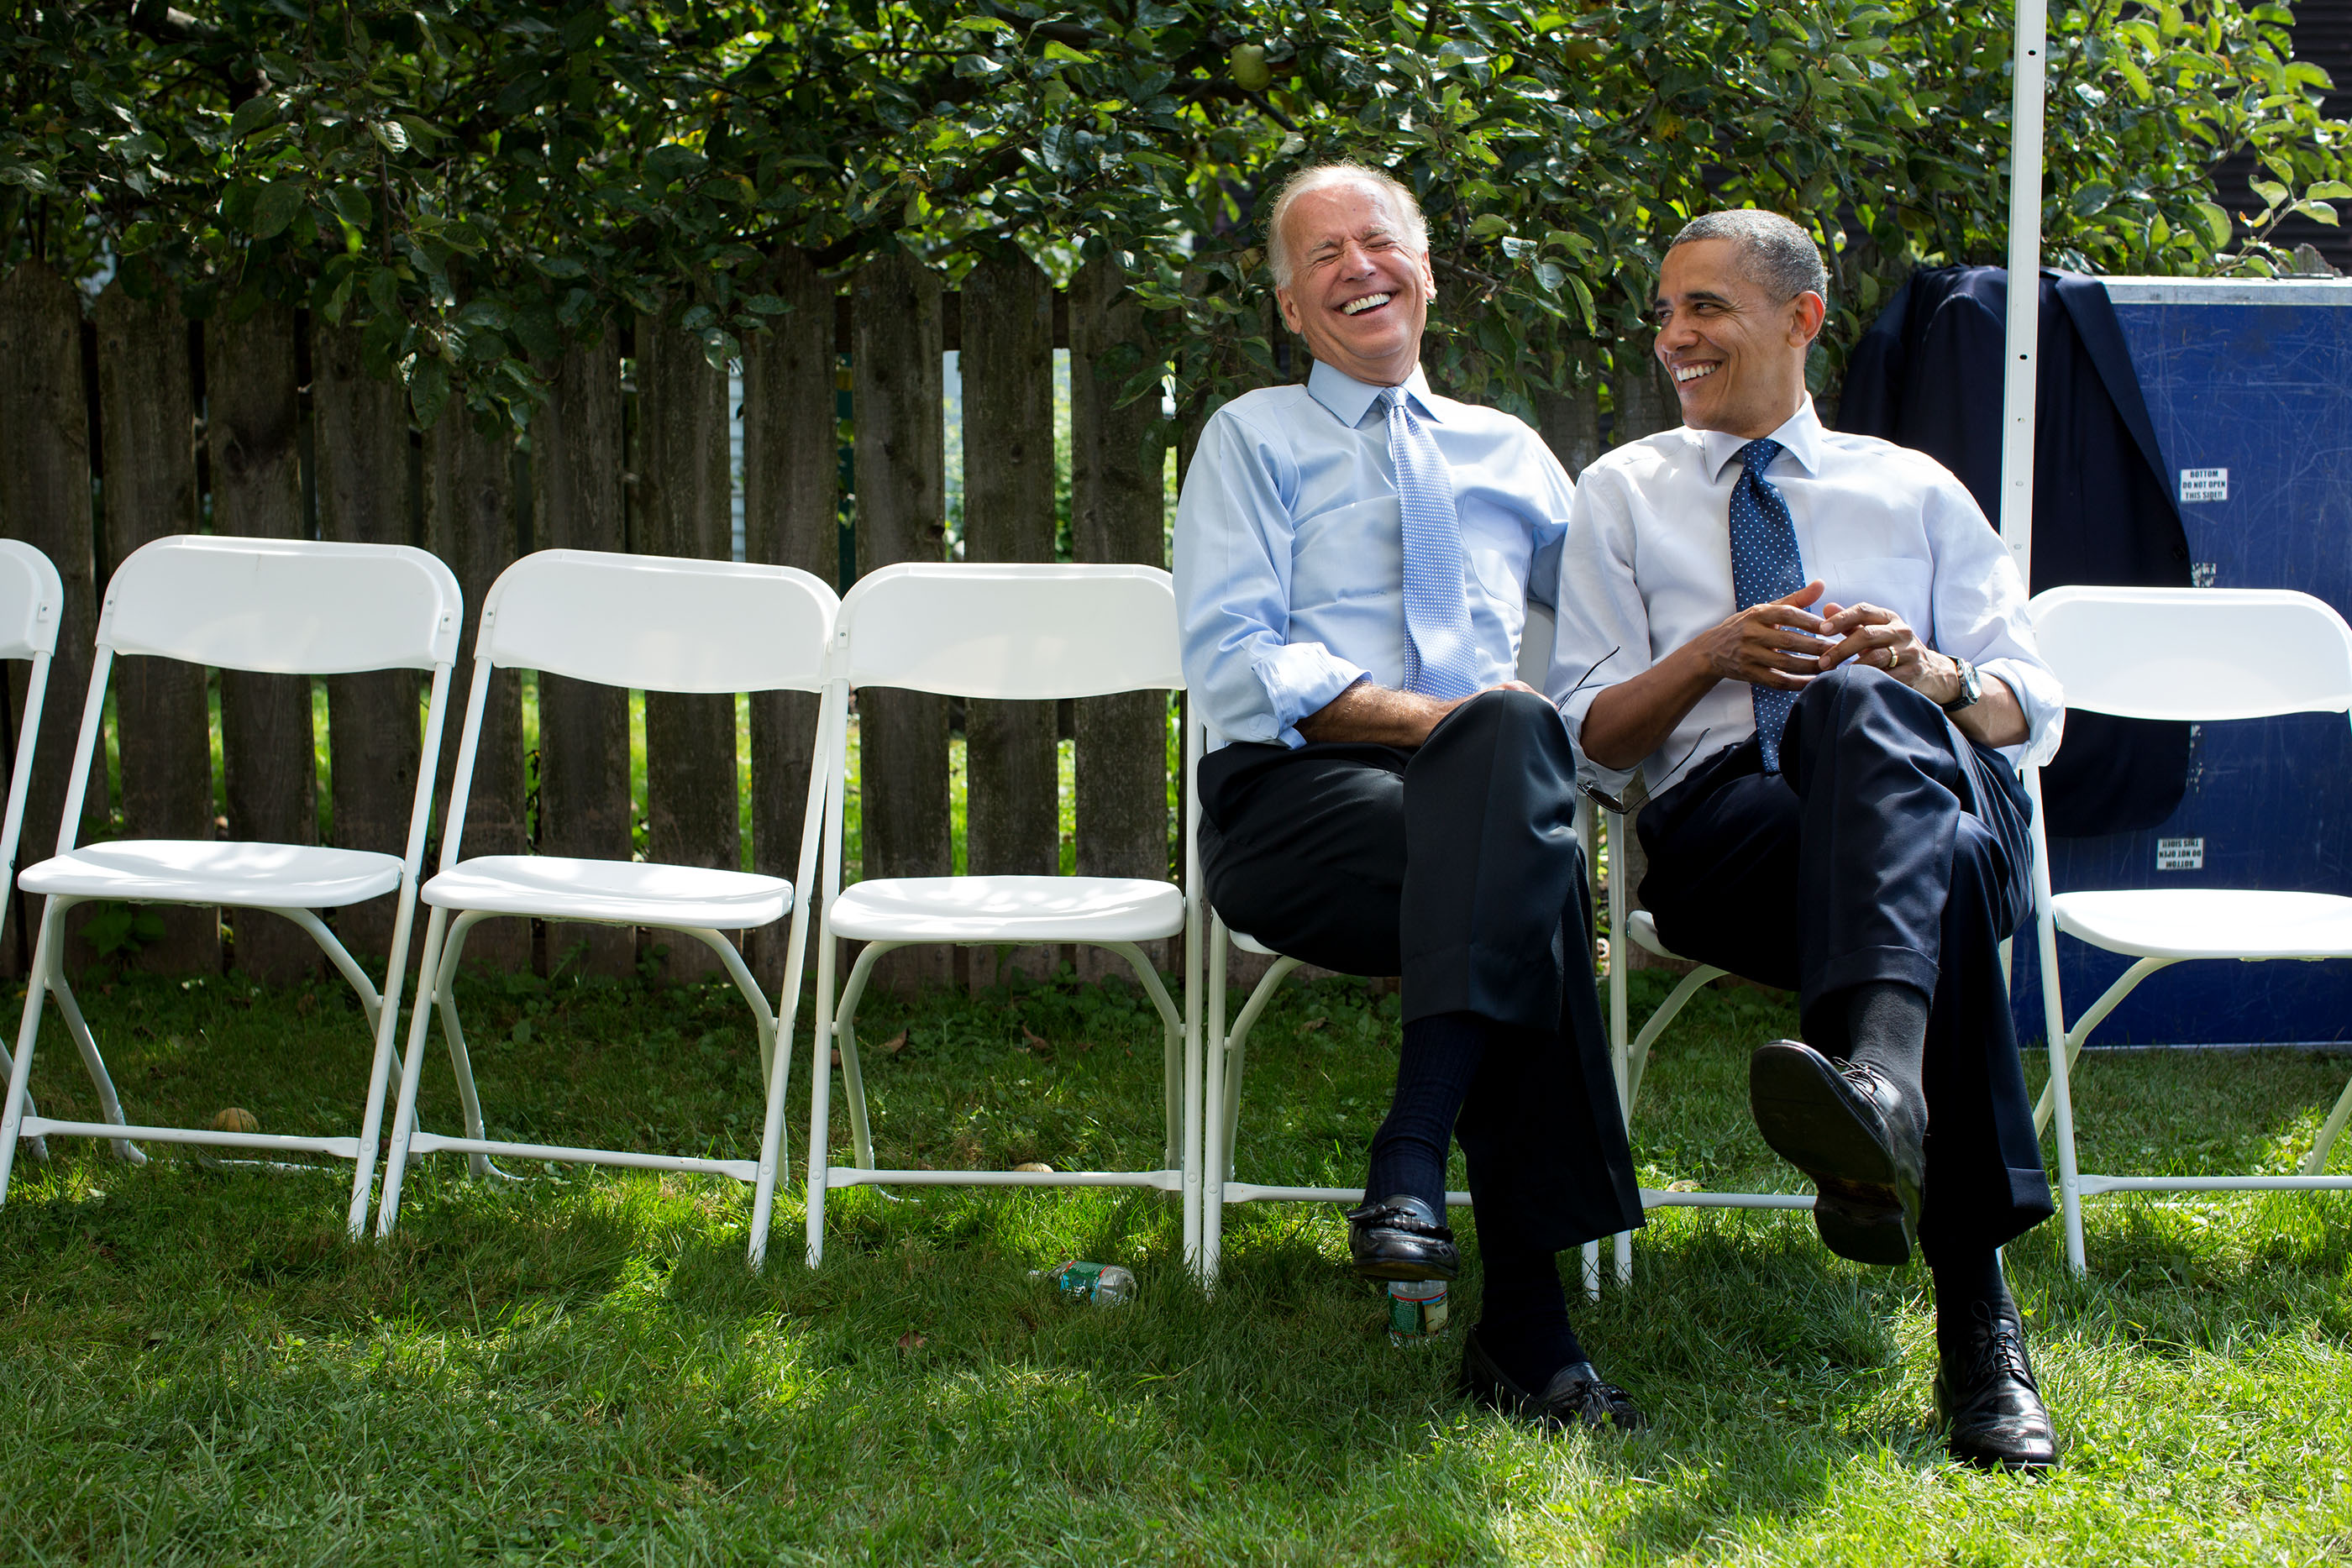 New Hampshire, Sept. 7, 2012. Joking with the Vice President Joe Biden before a campaign rally in Portsmouth. (Official White House Photo by Pete Souza)